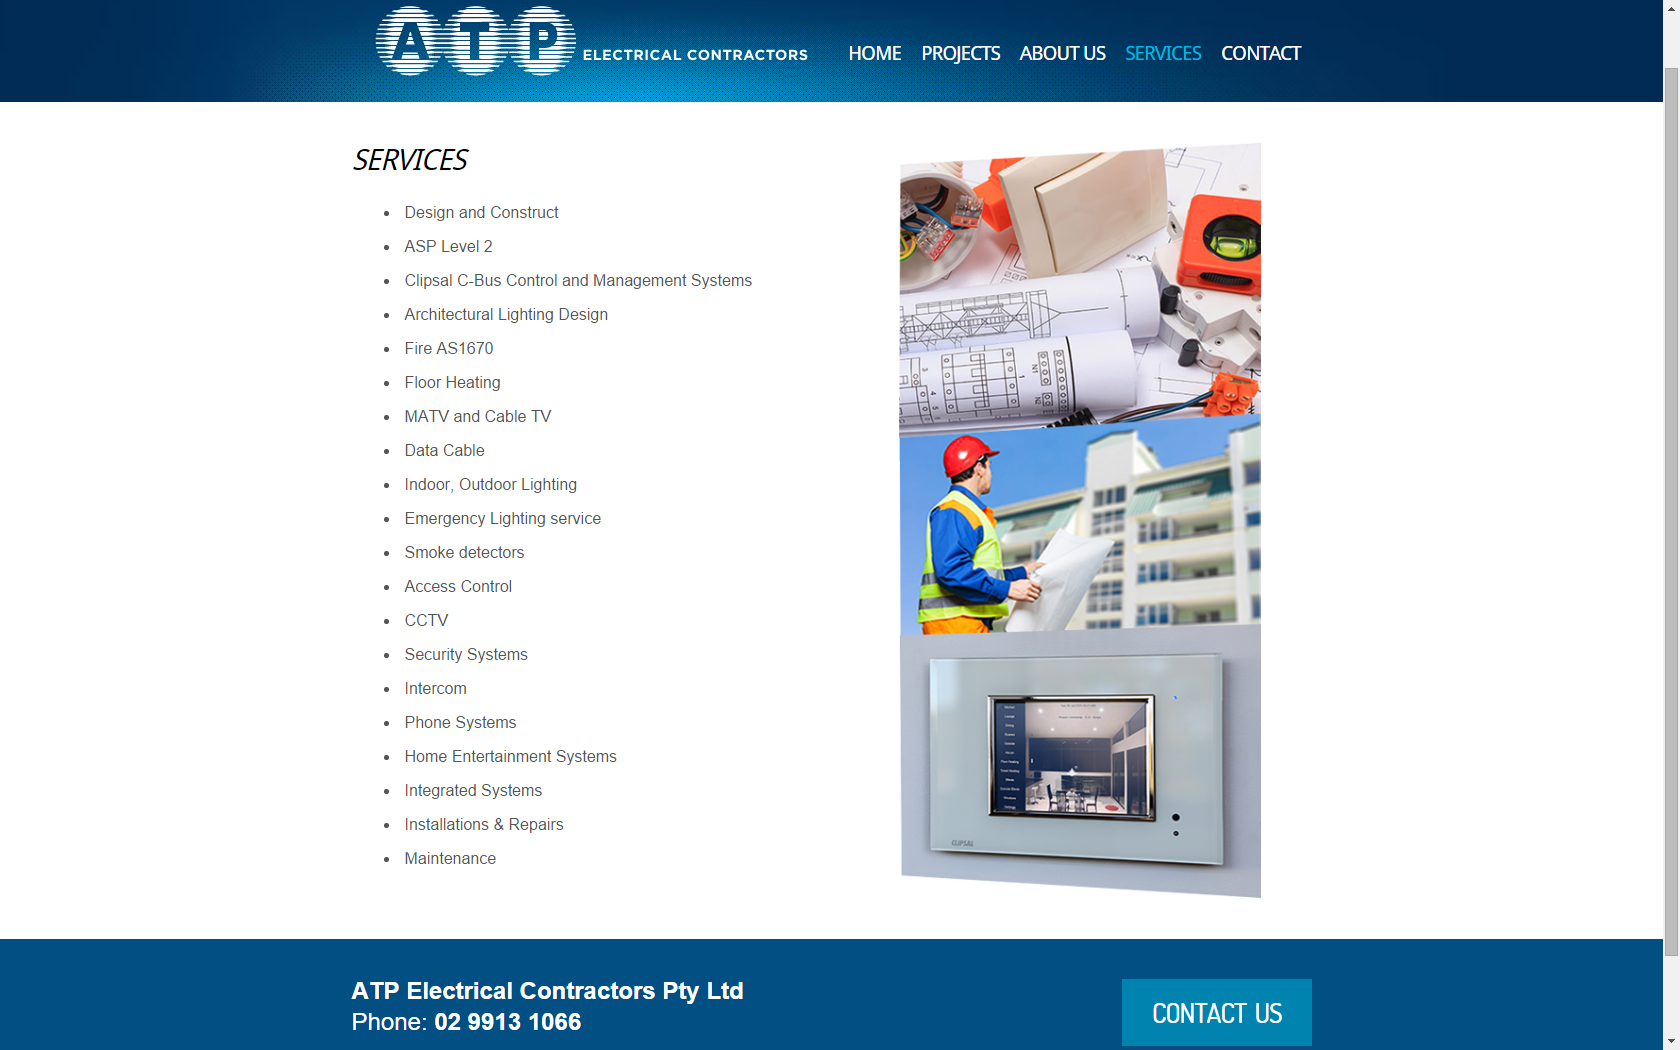 ATP Electrical